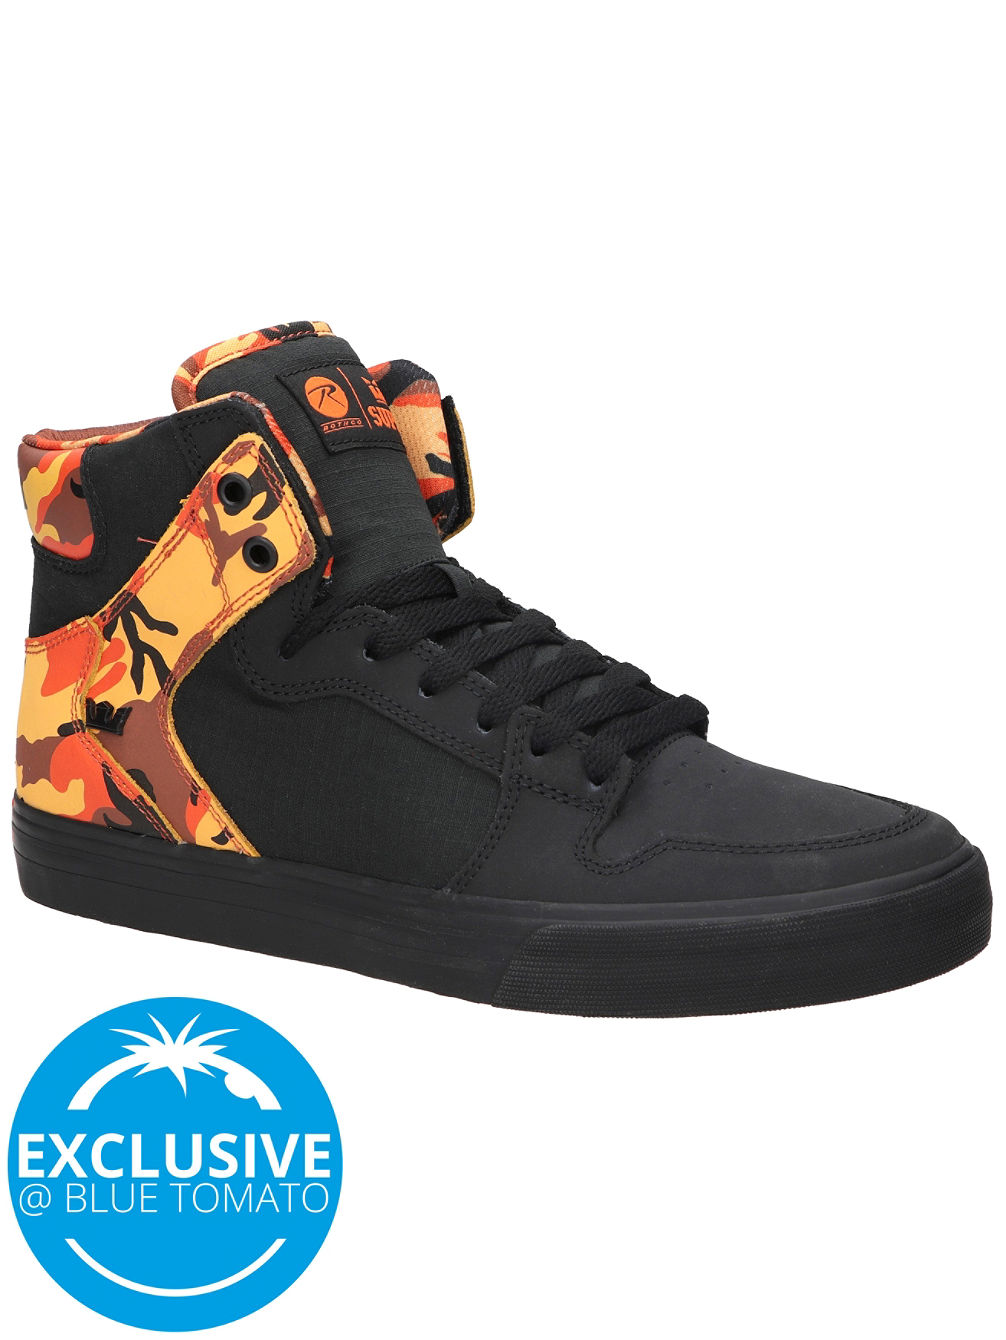 7dabd39c66 Buy Supra X Rothco Vaider Sneakers online at Blue Tomato